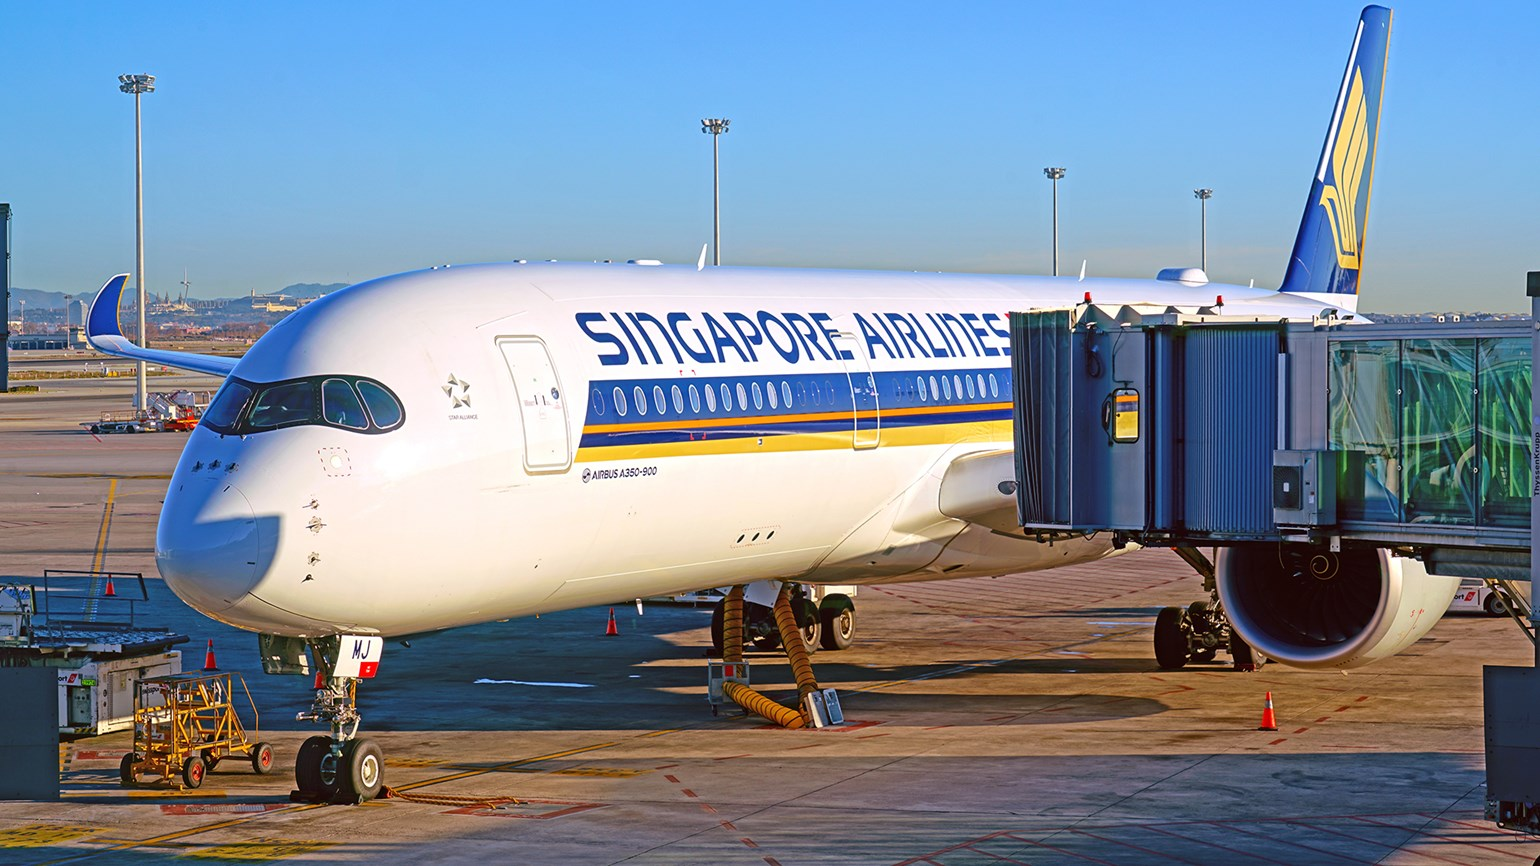 Singapore Airlines to bring NDC program to U.S. in March